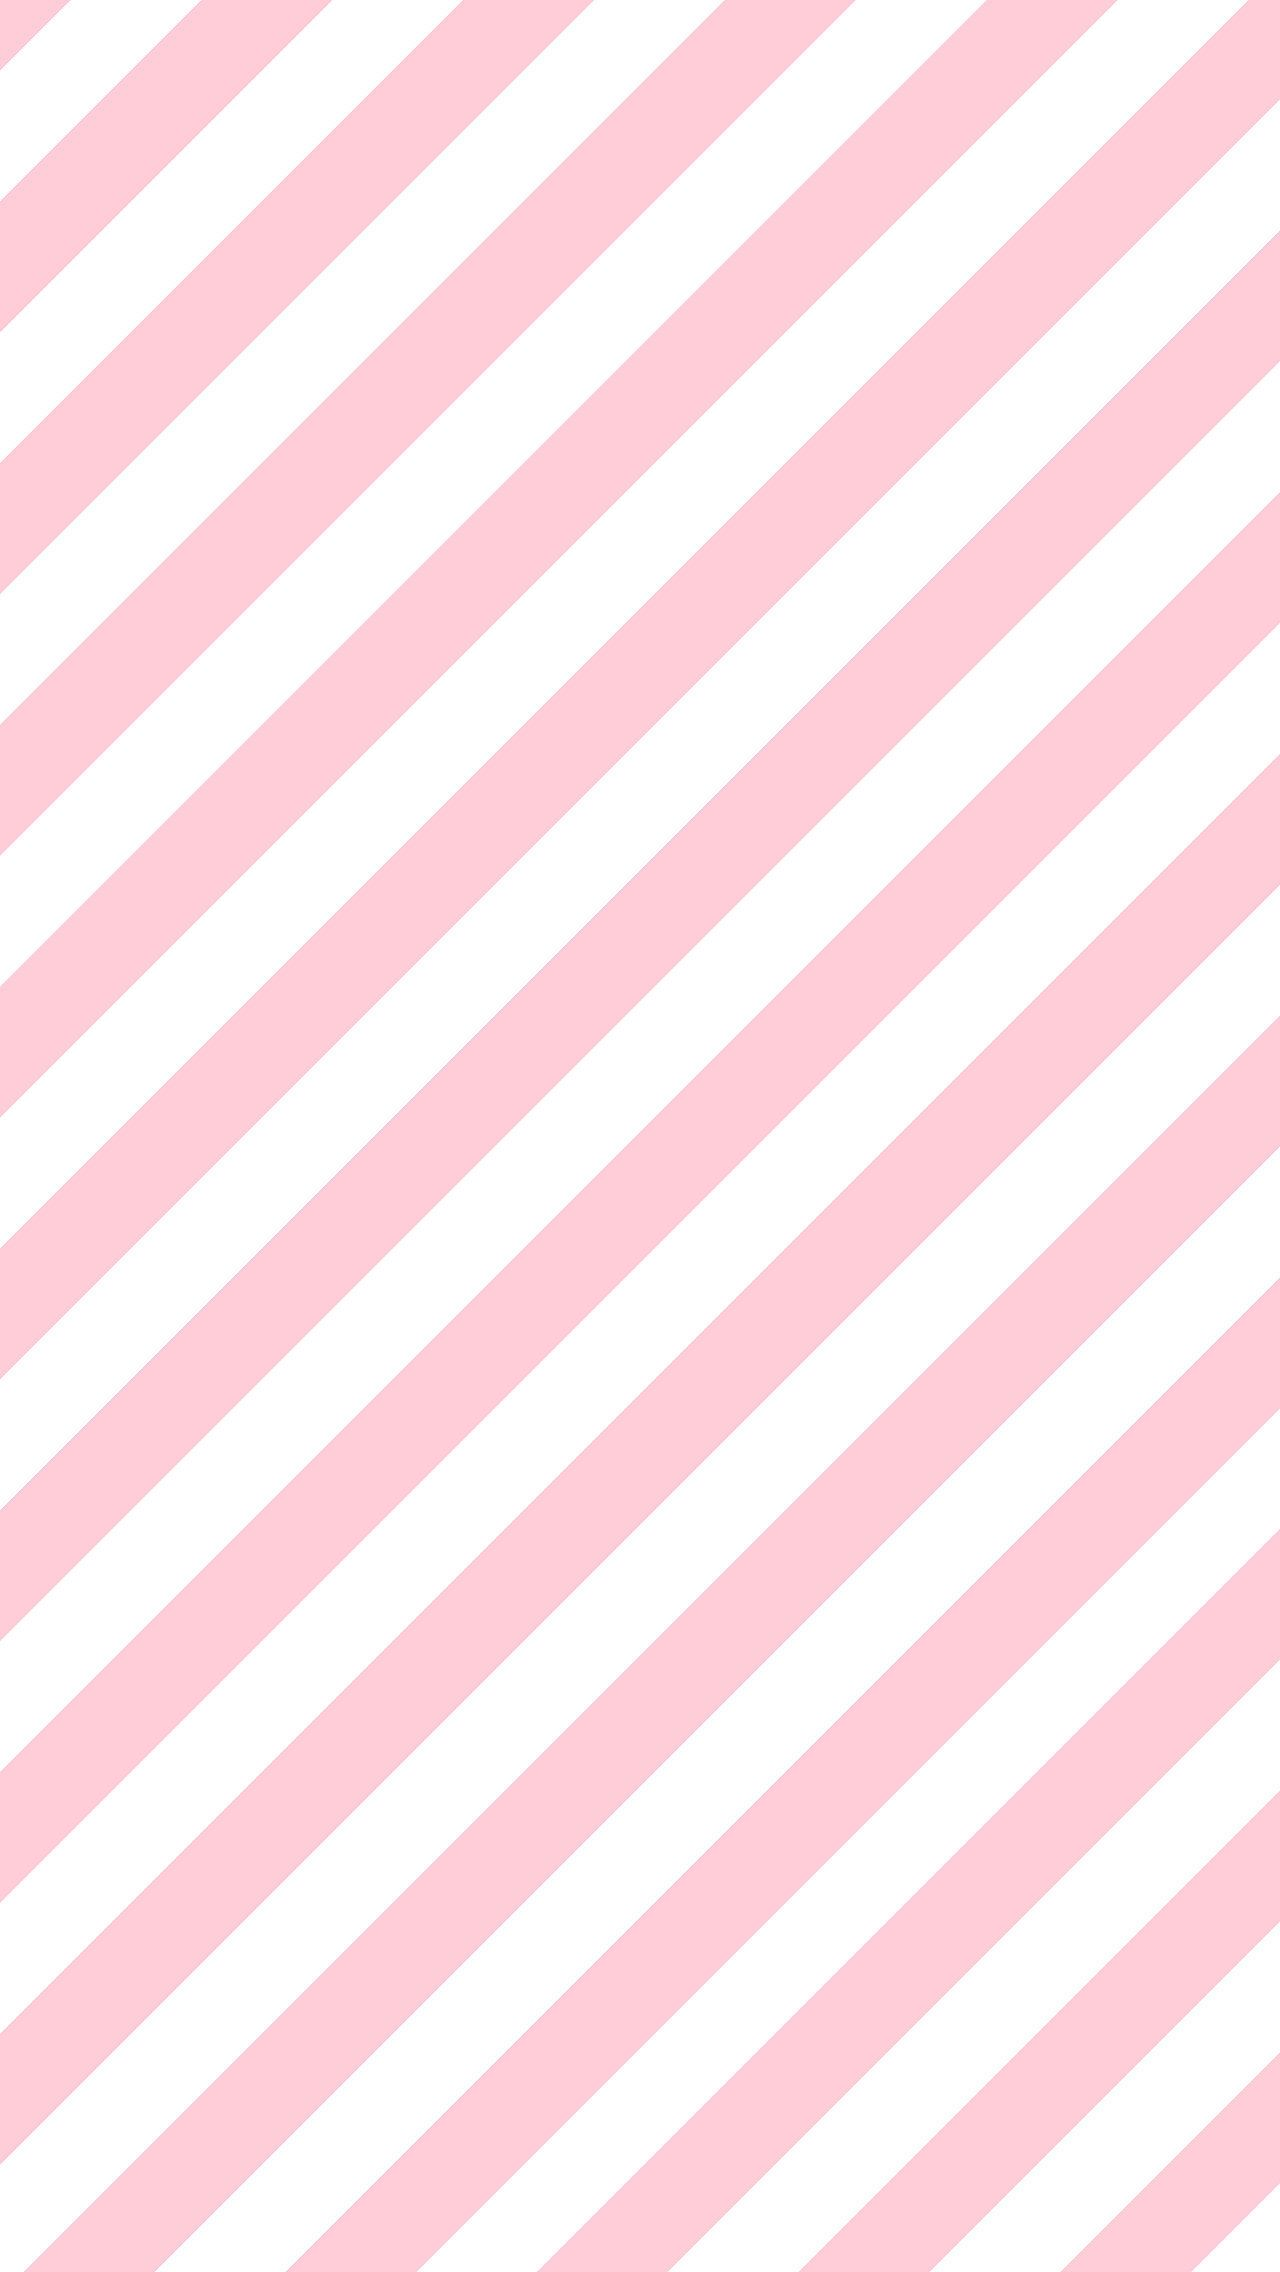 Pink Stripes Find More Preppy Wallpapers For Your IPhone Android Prettywallpaper